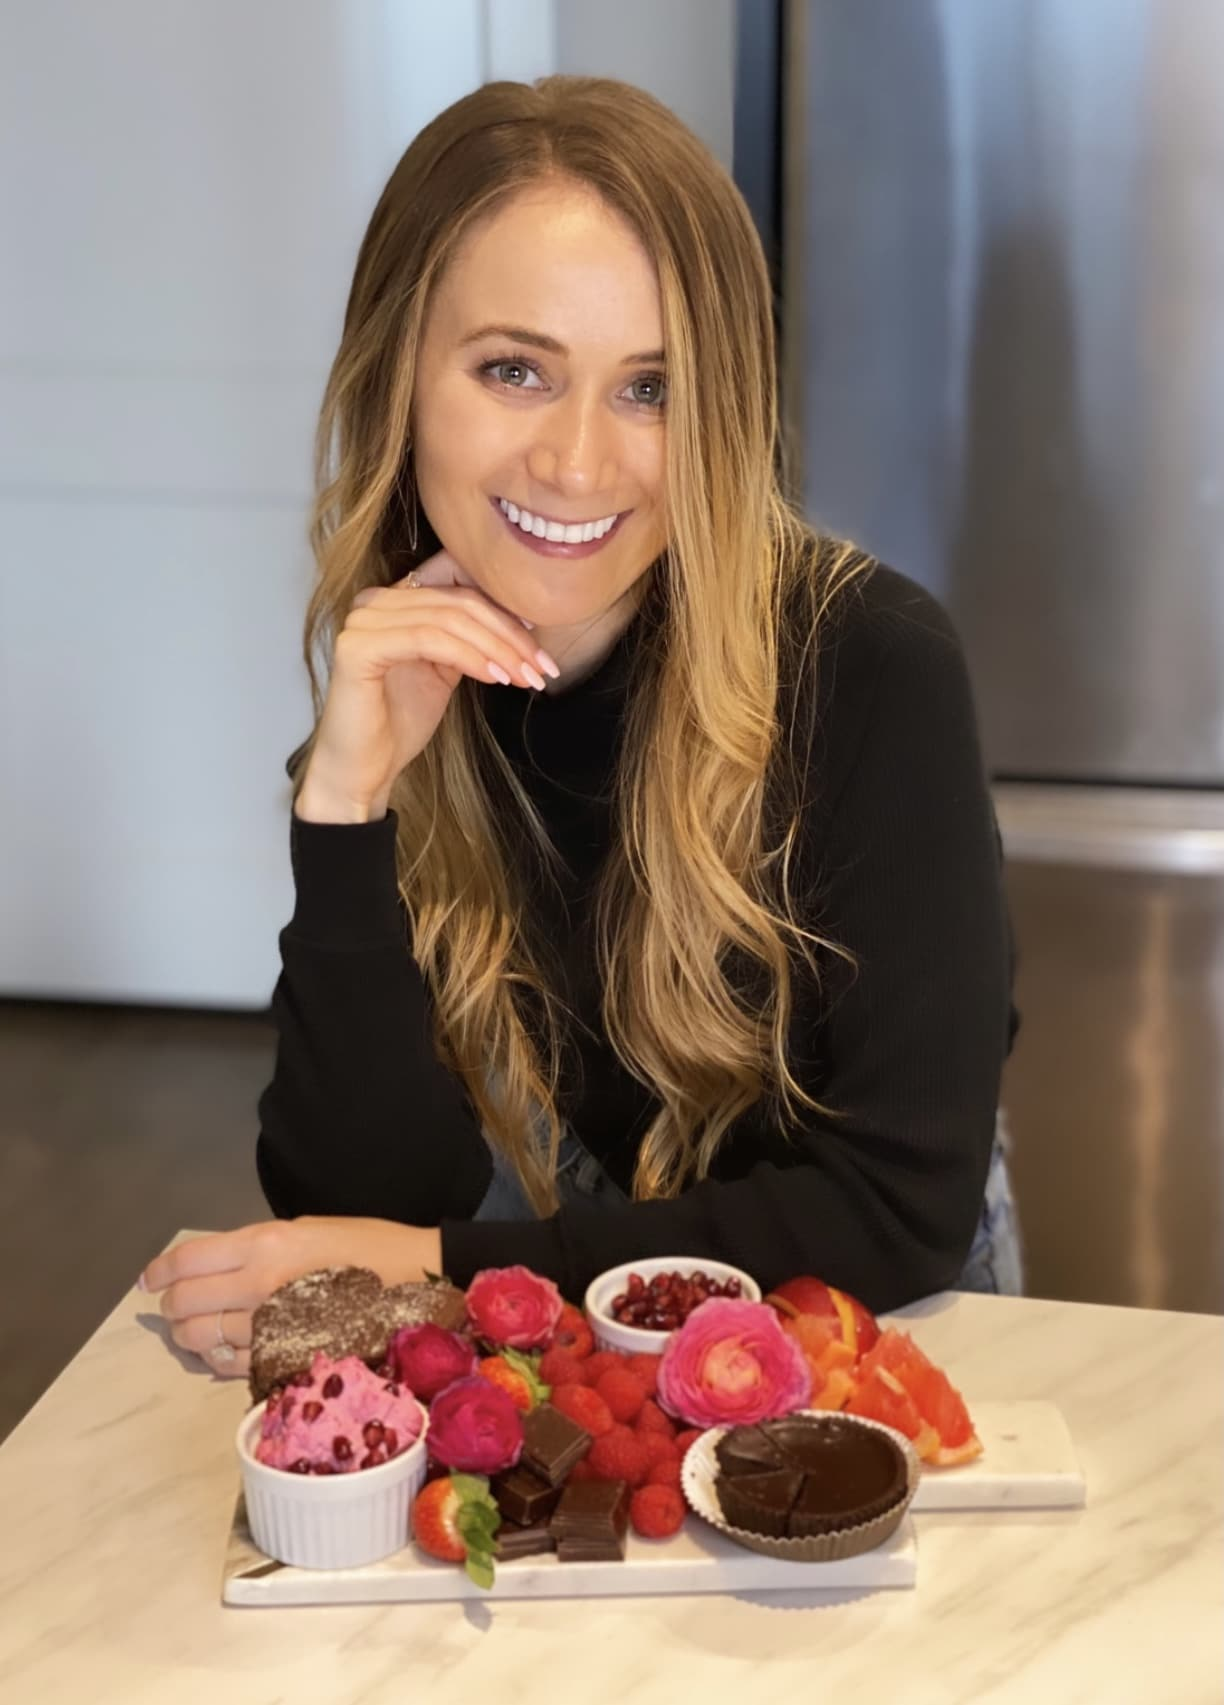 Girl smiling with pink, red, and brown charcuterie board filled with fruit and chocolate.